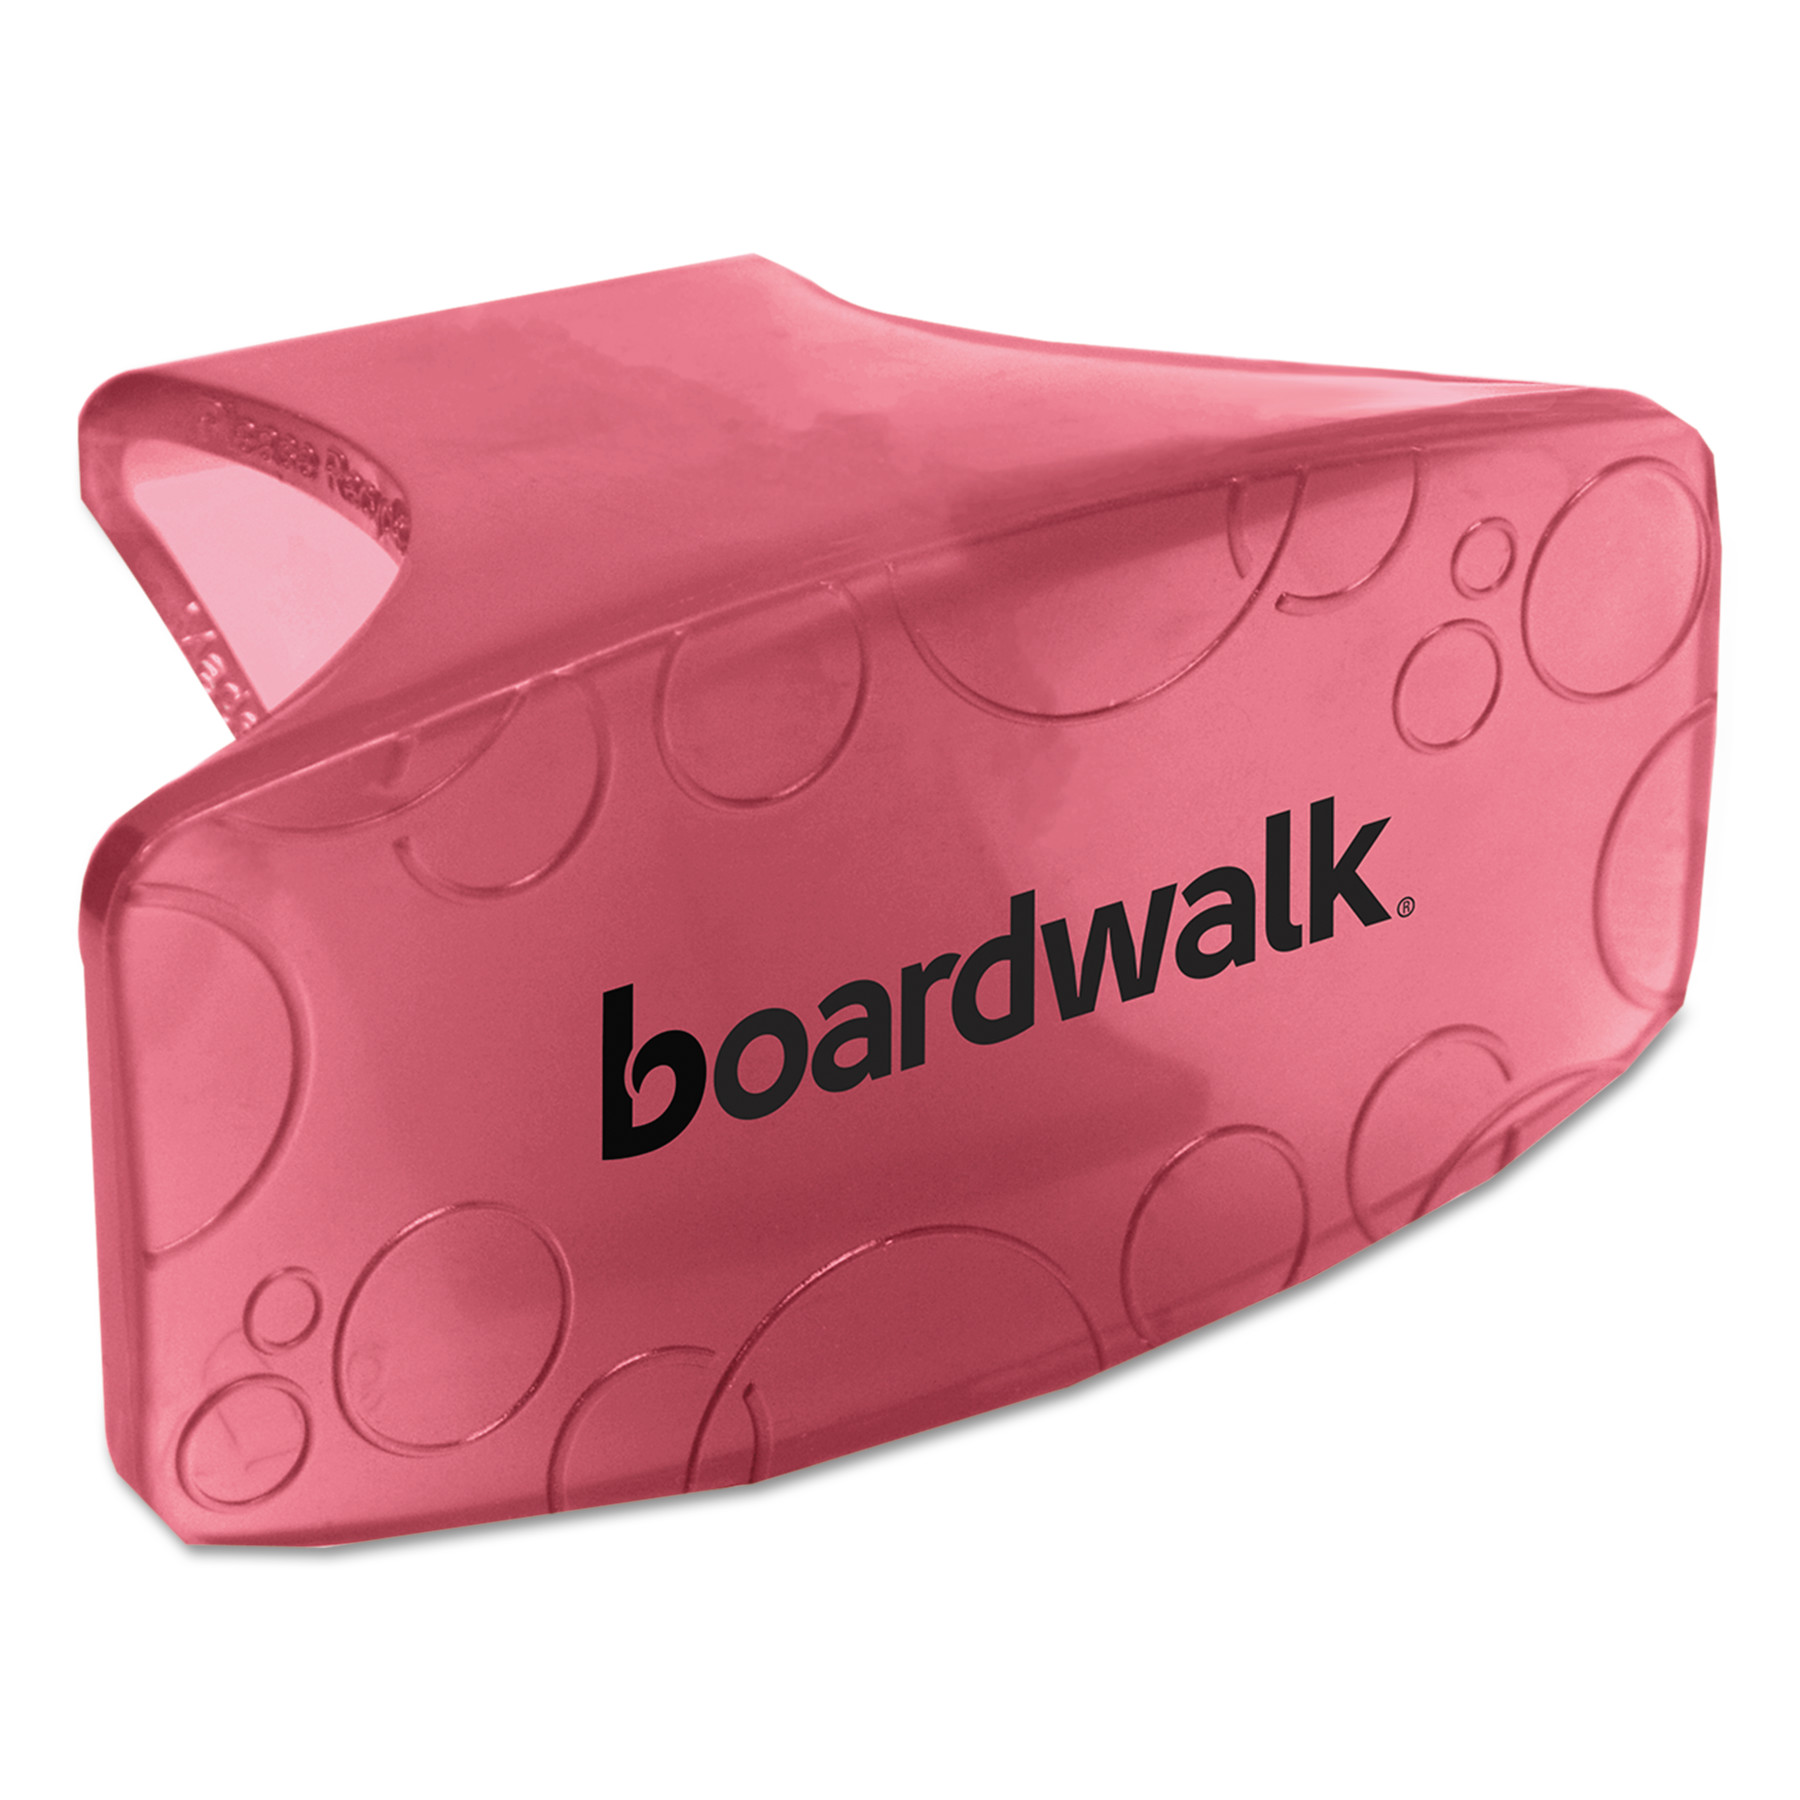 Boardwalk Bowl Clip, Spiced Apple Scent, Red, 12/Box -BWKCLIPSAP